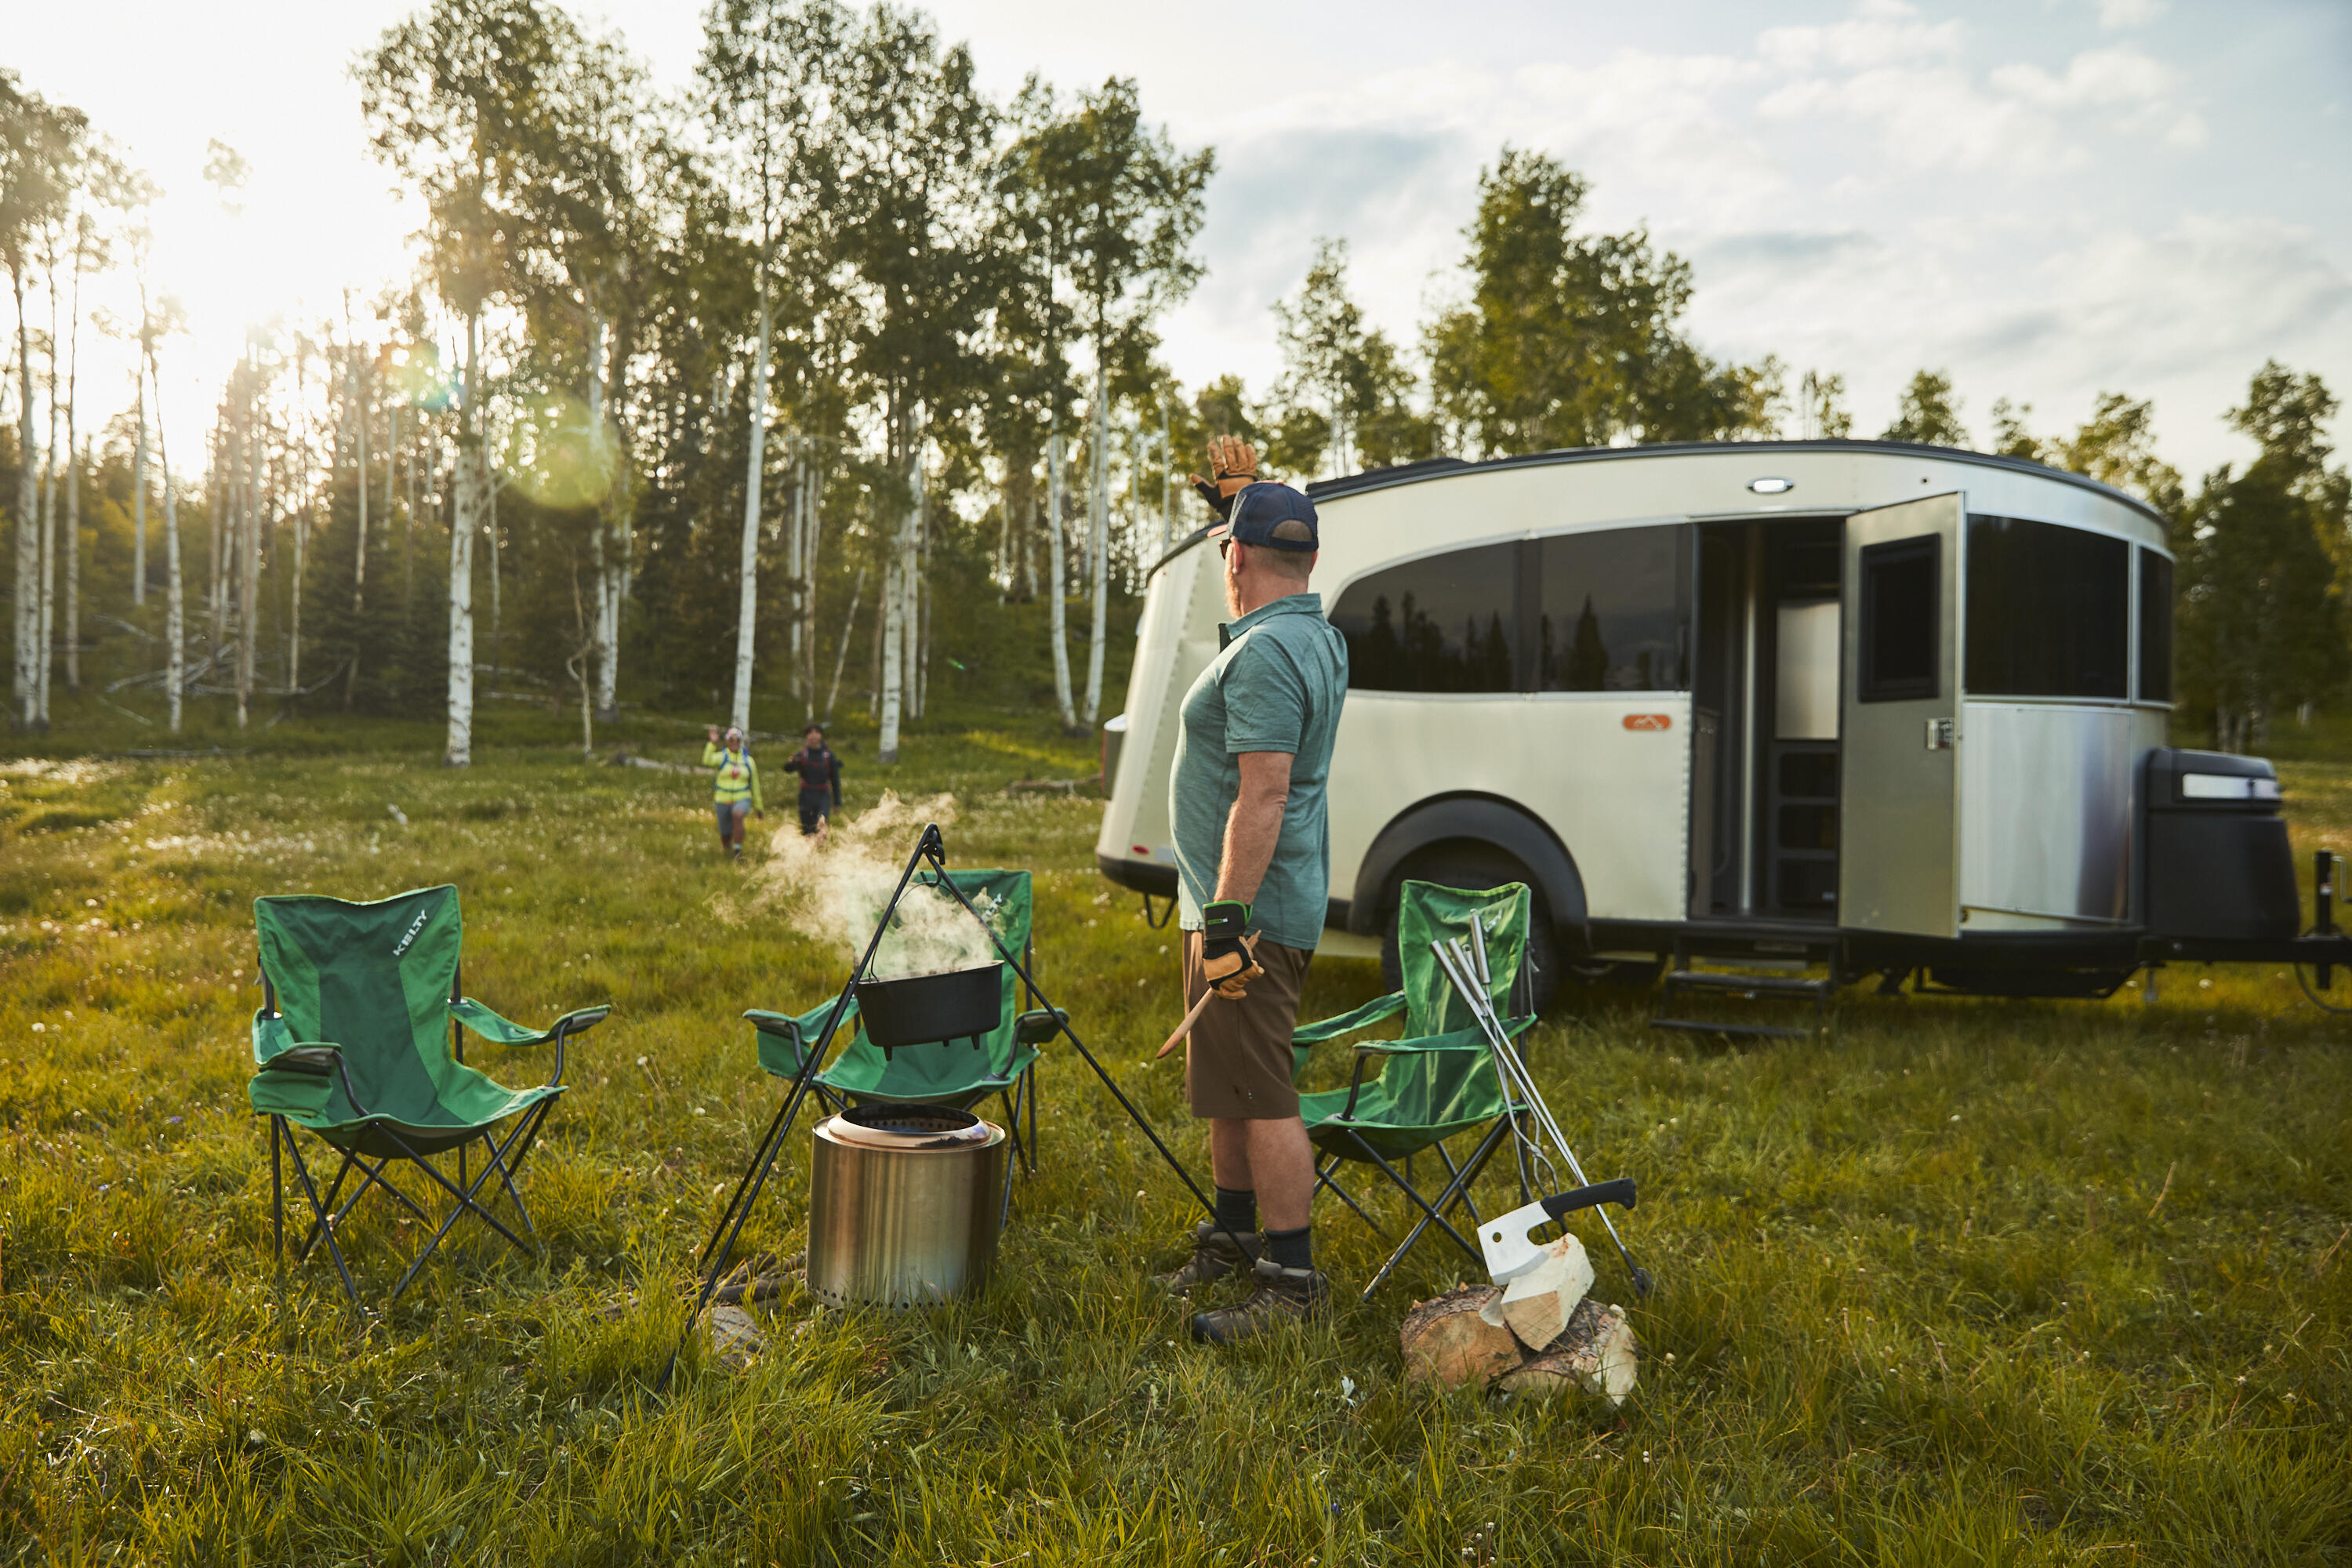 20-06-20-airstream-steamboat-dl-1673